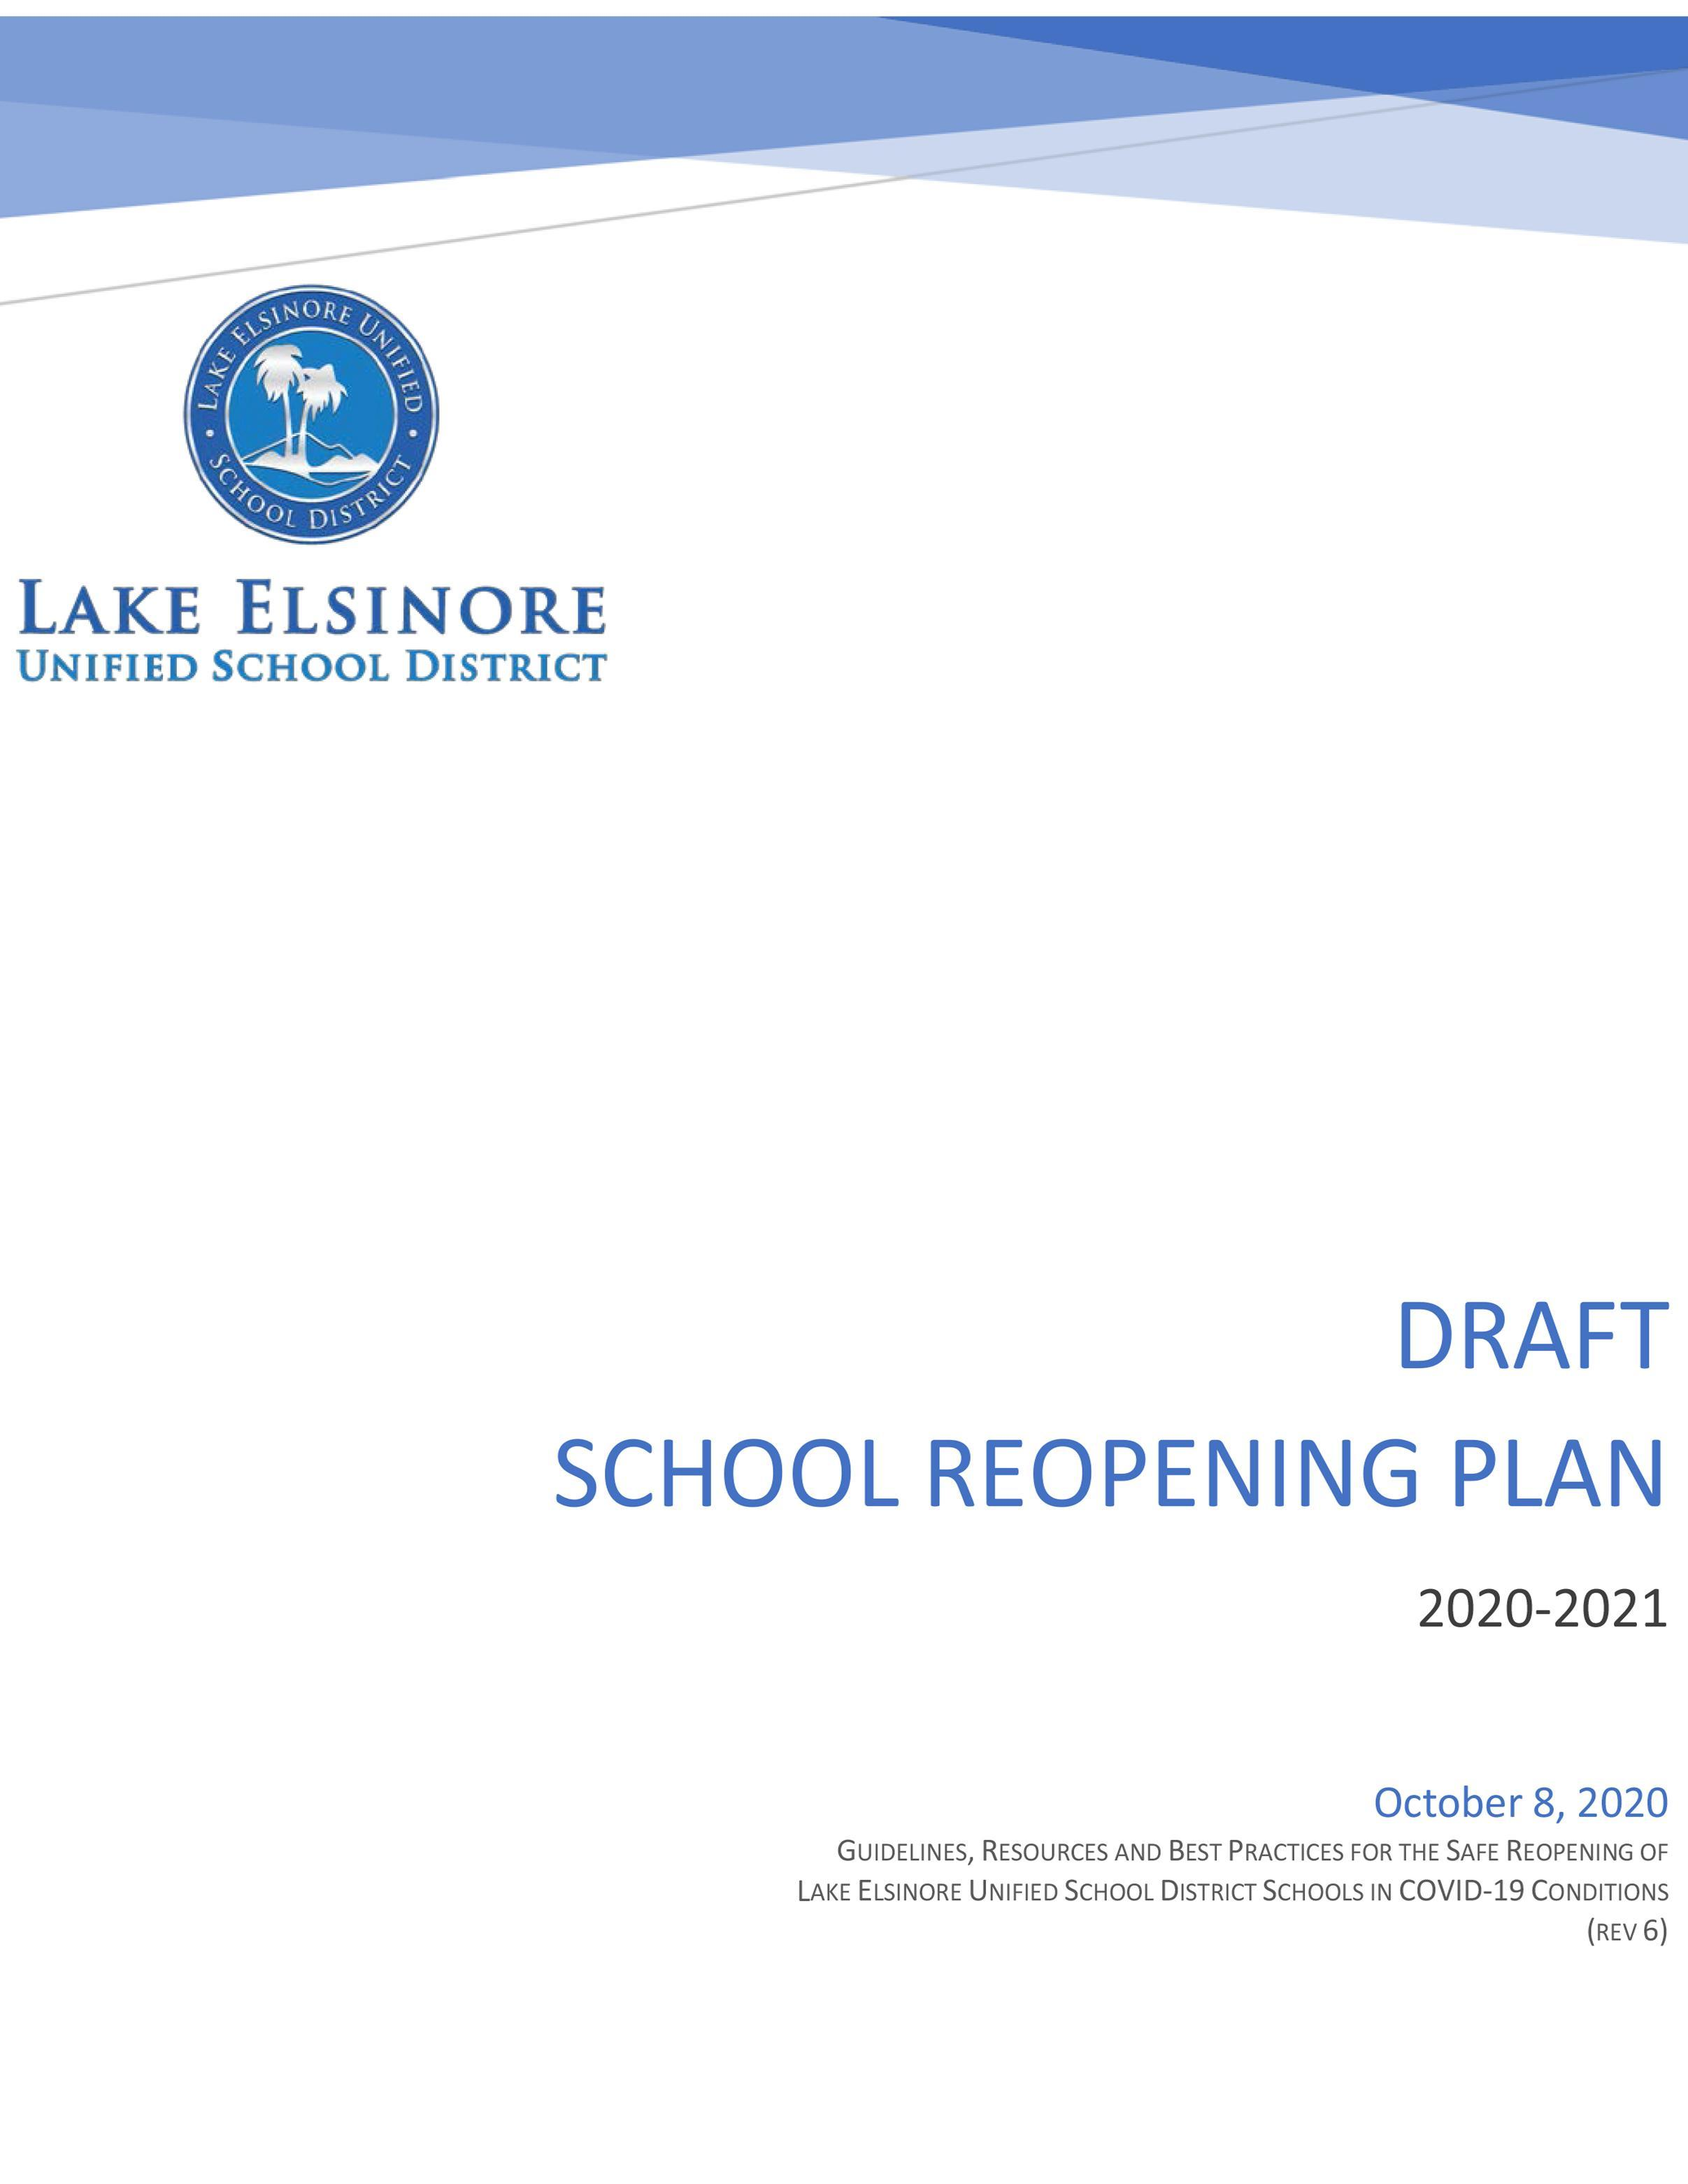 Draft School Reopening Plan cover_ver6